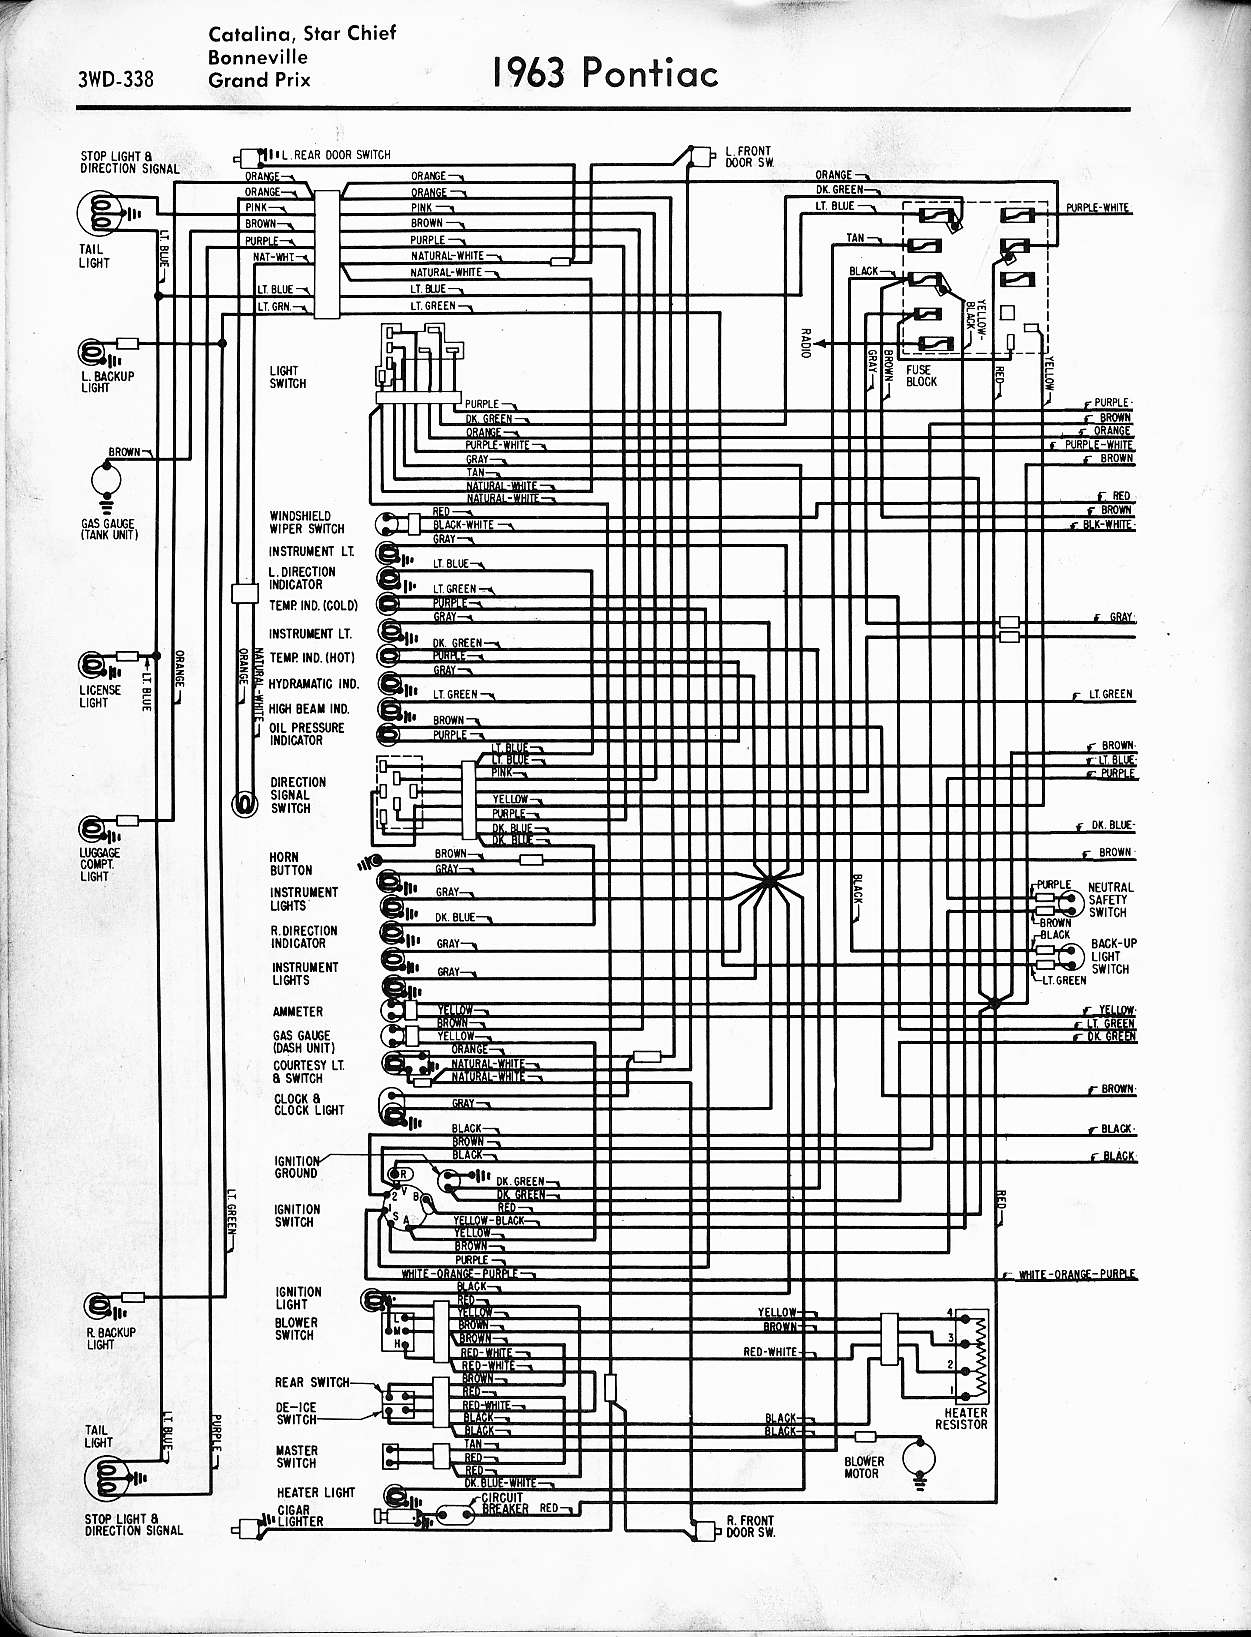 2004 Pontiac Bonneville Wiring Diagram Library For 1957 1965 Rh Oldcarmanualproject Com Grand Prix